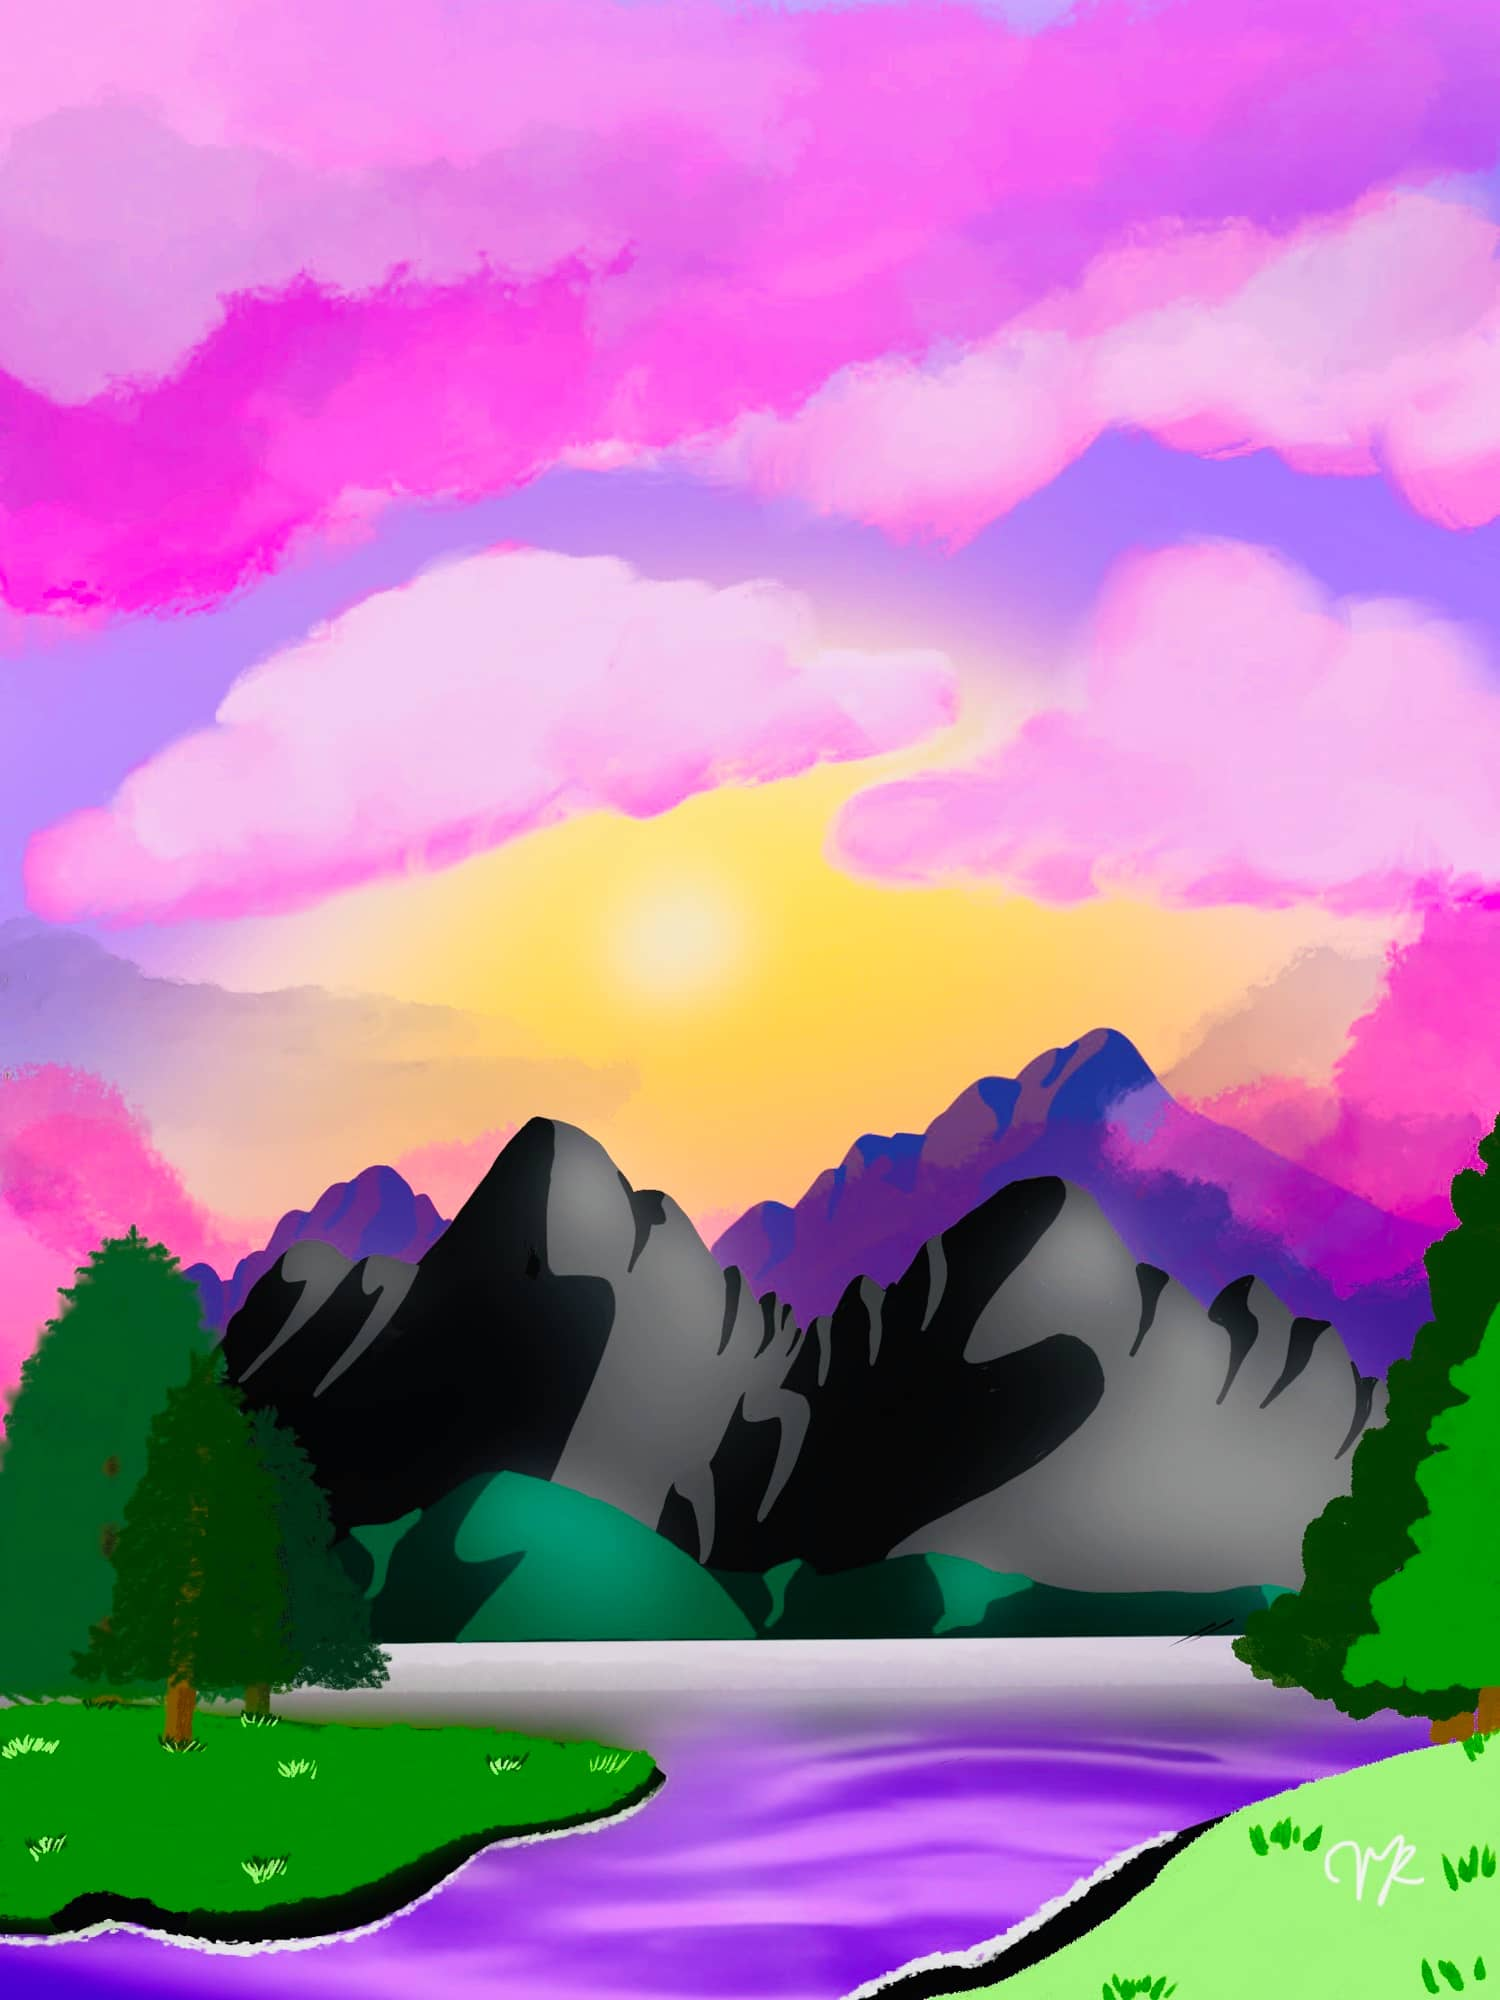 Digital painting of a mountain and river with a pink and purple sky, work by Victoria A Rapoza